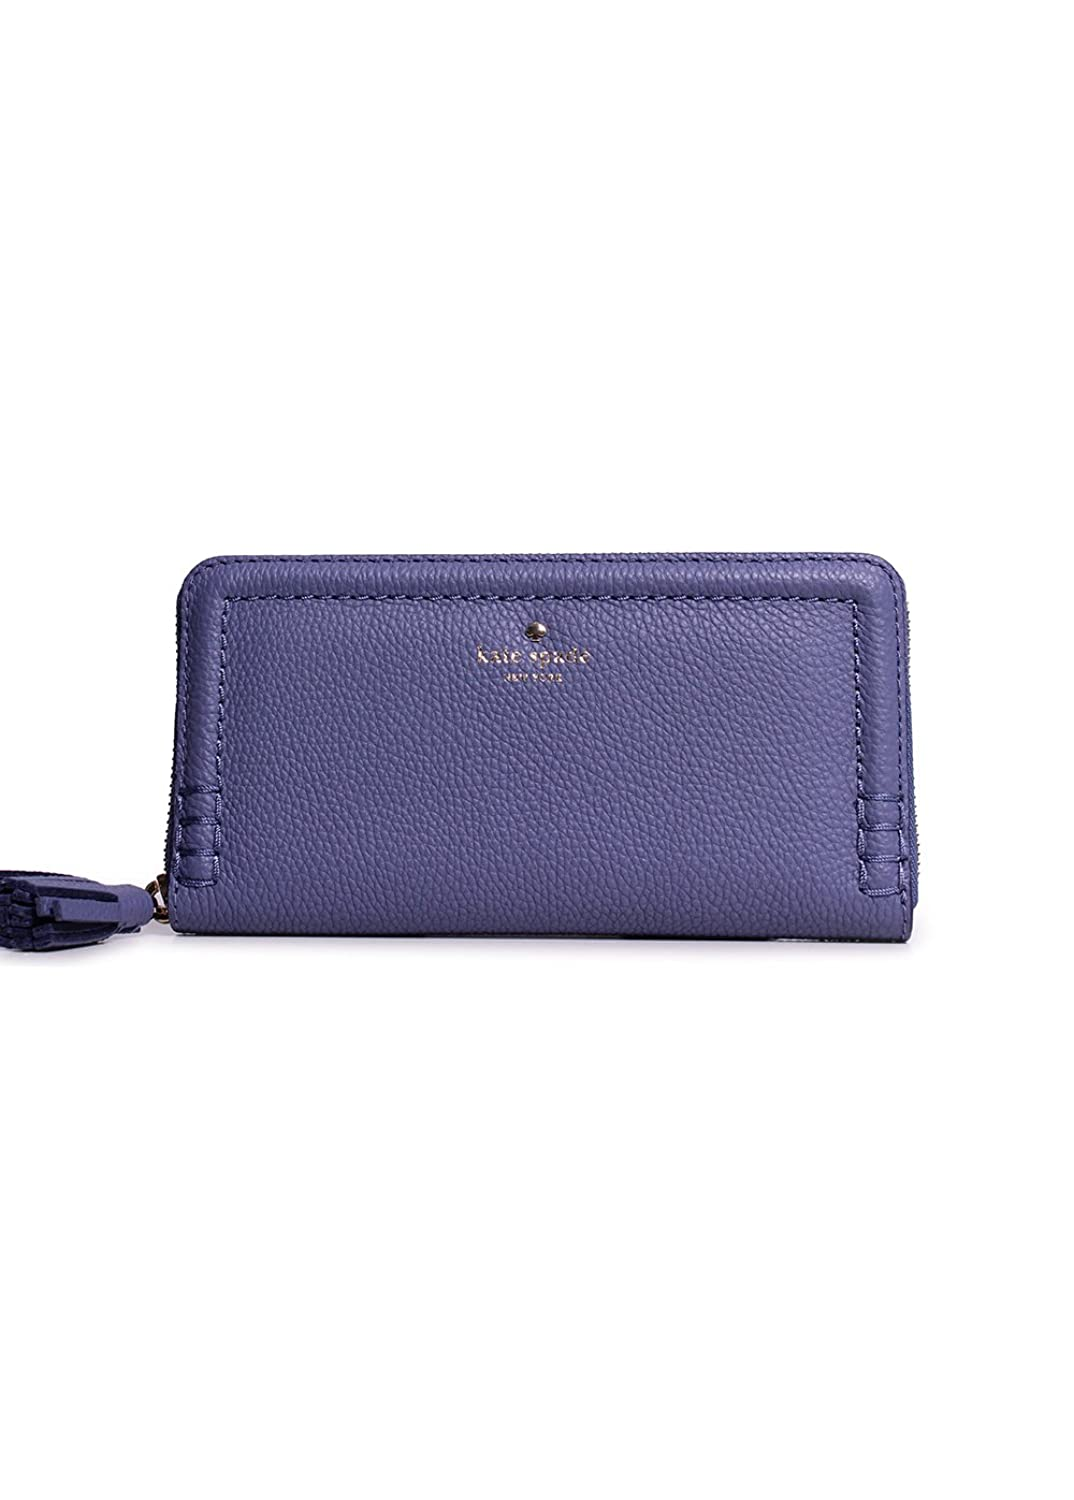 Kate Spade Orchard Street Lacey Wallet in Oysterブルー